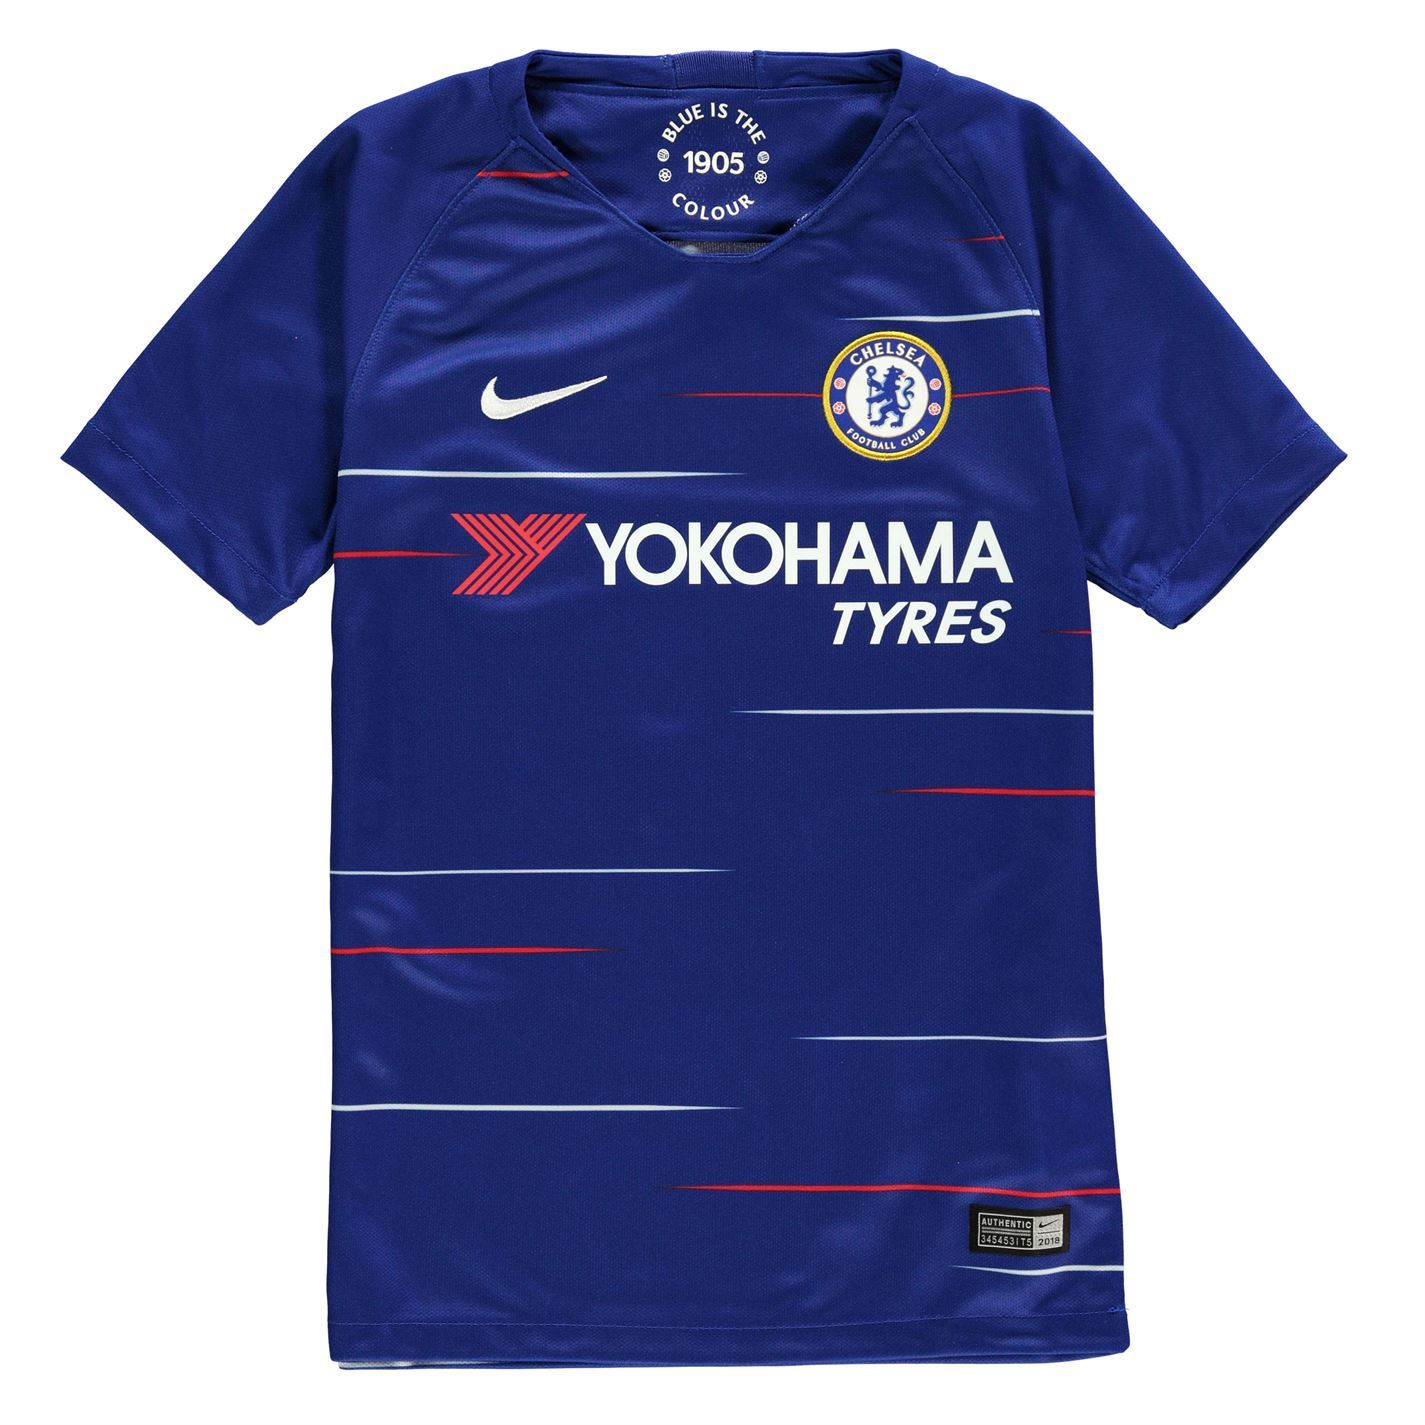 newest 4e130 54170 Details about Nike Chelsea Home Jersey 2018 2019 Juniors Blue Football  Soccer Fan Shirt Top